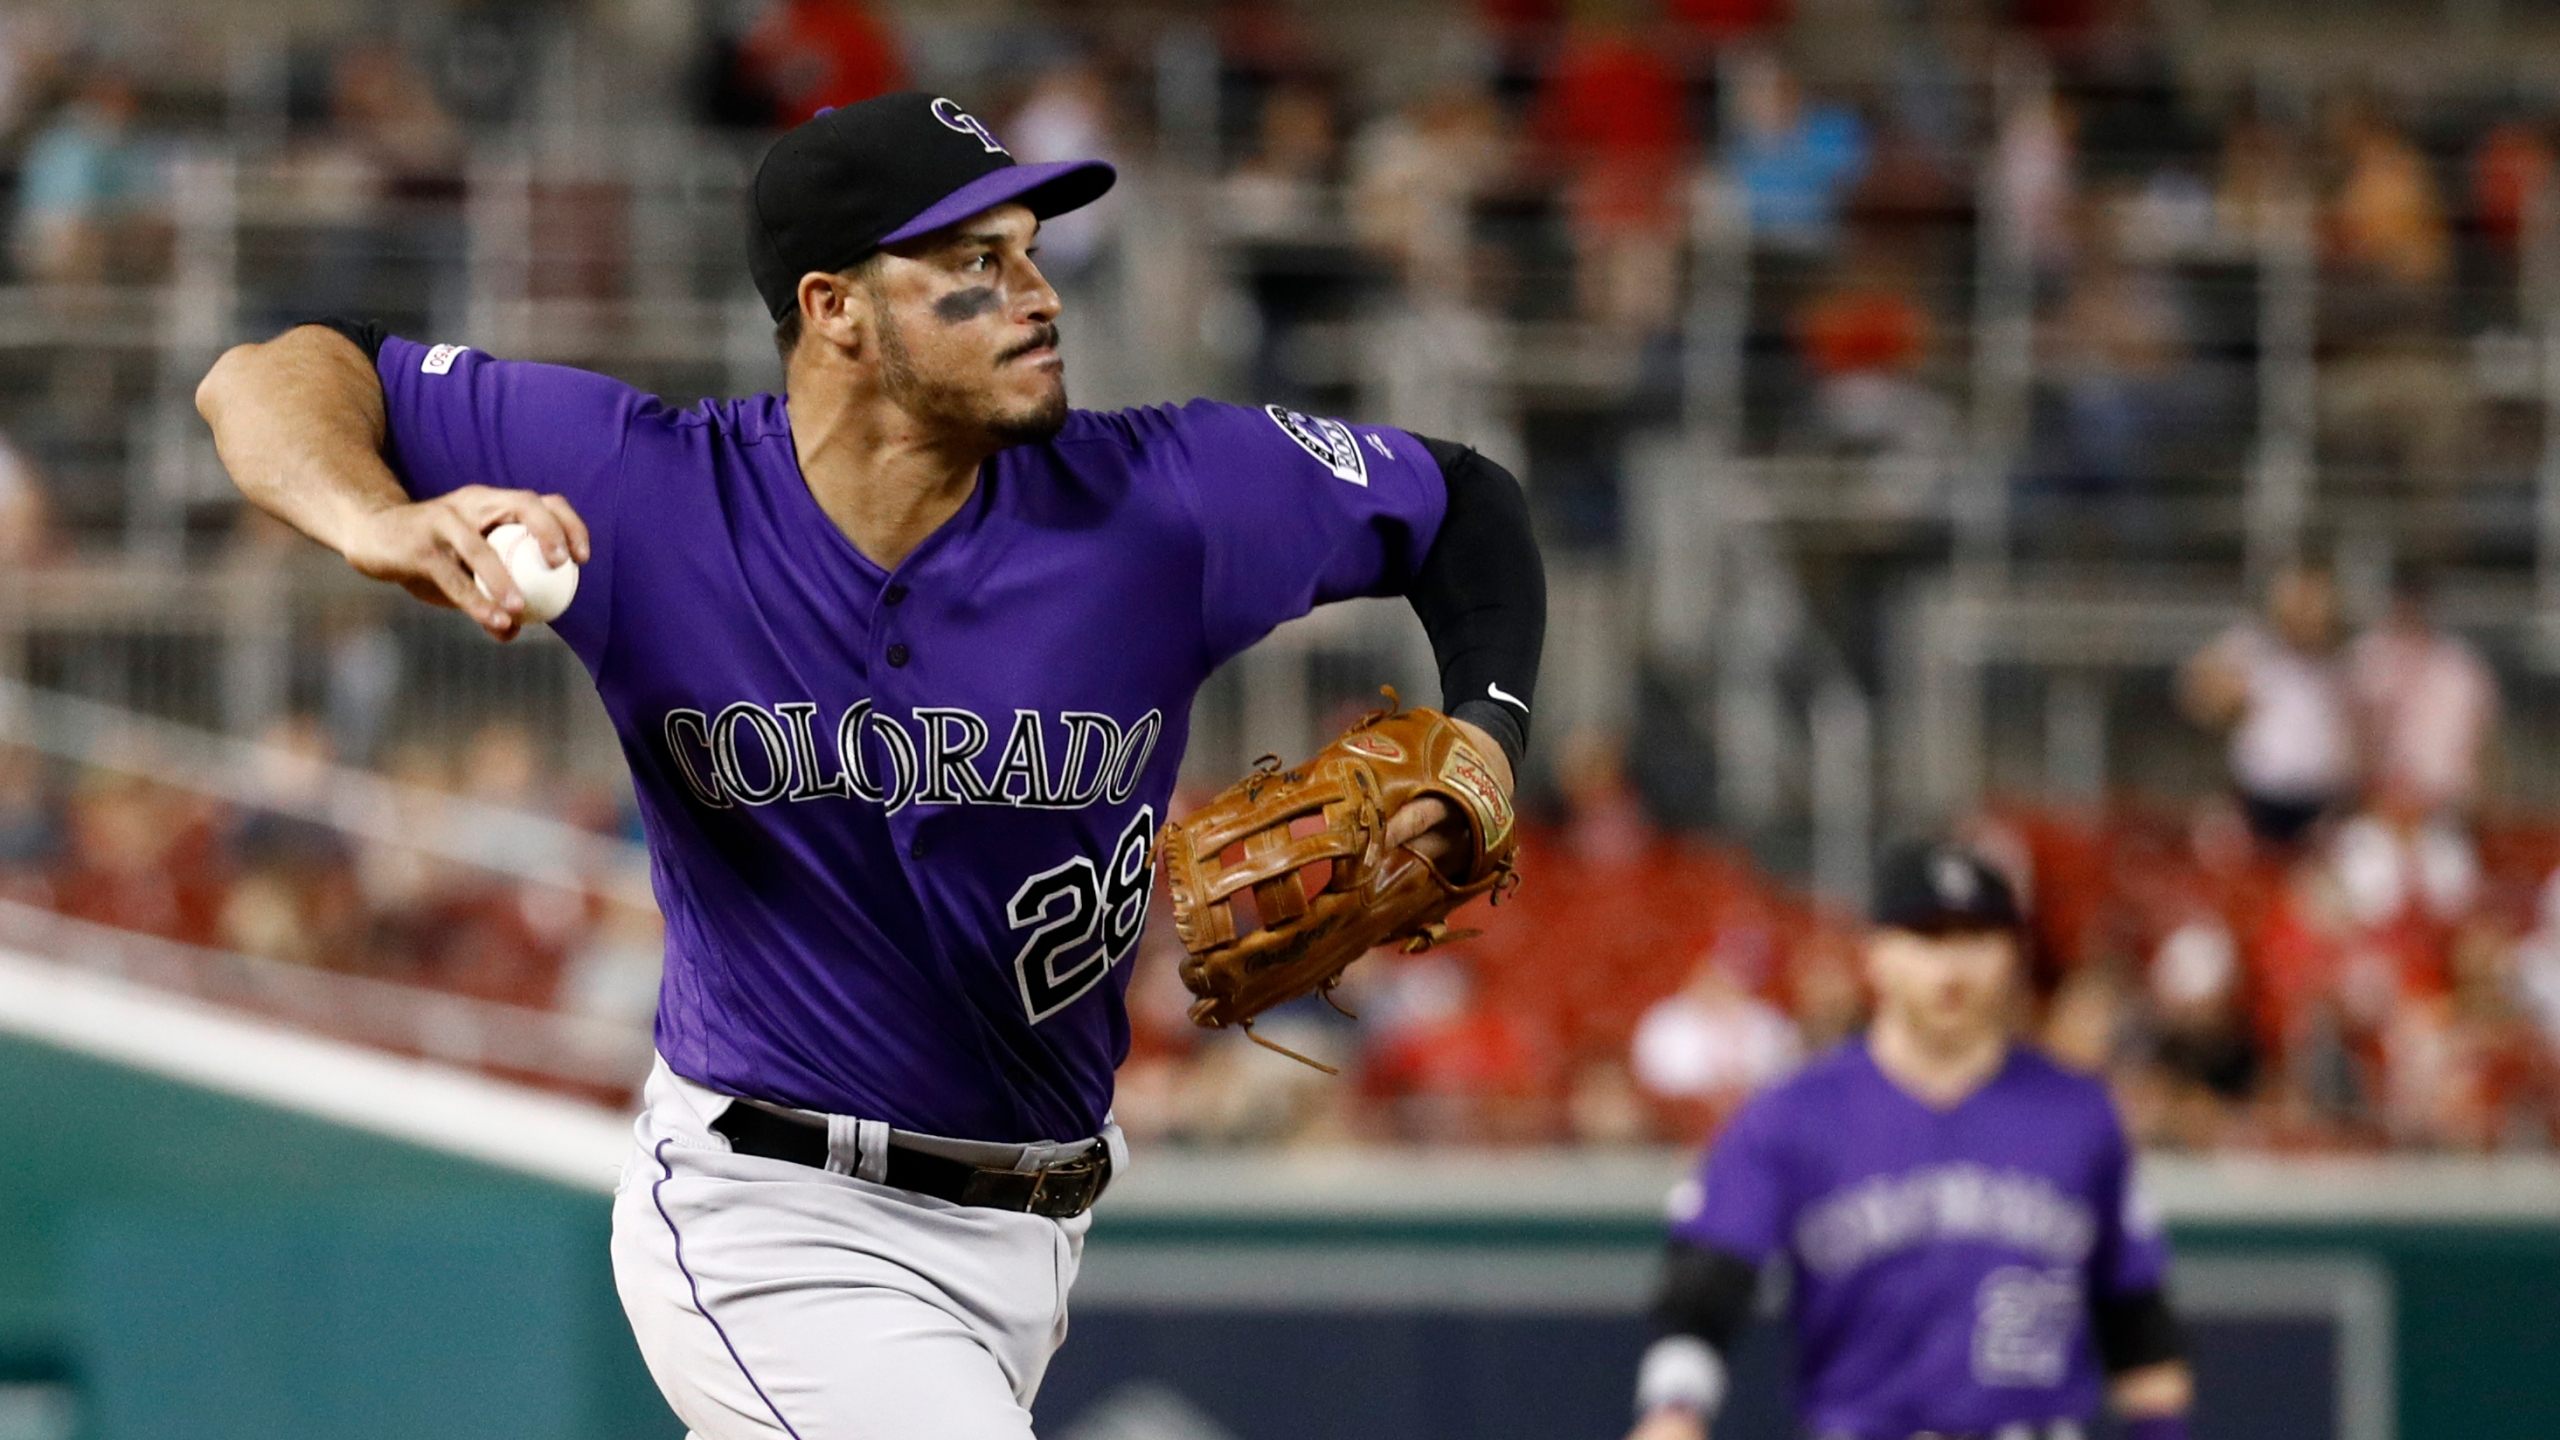 Colorado Rockies third baseman Nolan Arenado throws out Washington Nationals' Brian Dozier at first base in the second inning of the second baseball game of a doubleheader, Wednesday, July 24, 2019, in Washington. (AP Photo/Patrick Semansky)